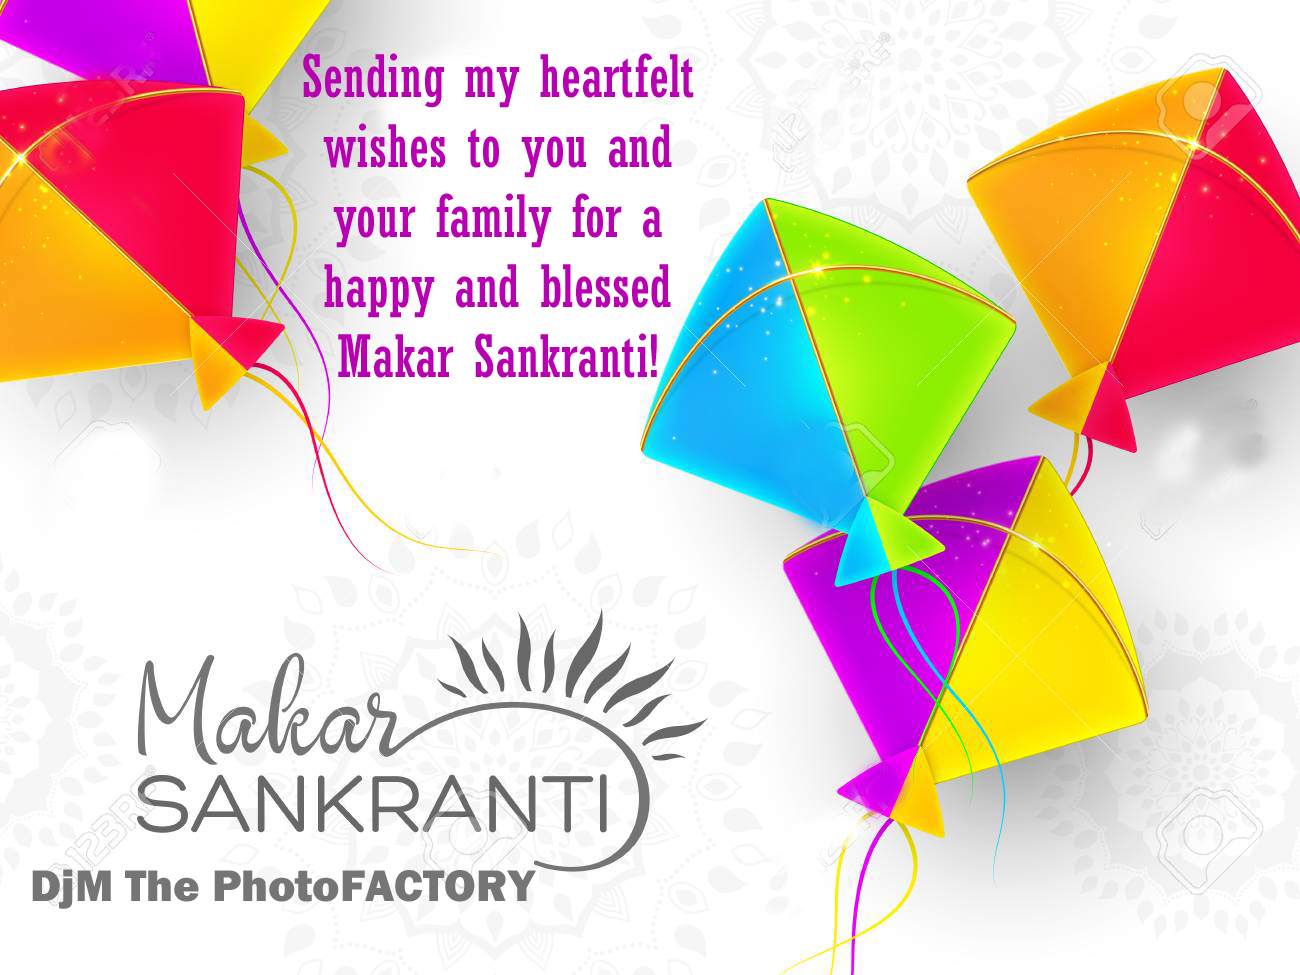 Happy Makar Sankranti 2020: Wishes images, messages, quotes, SMS, Facebook and WhatsApp status to share with your friends and family